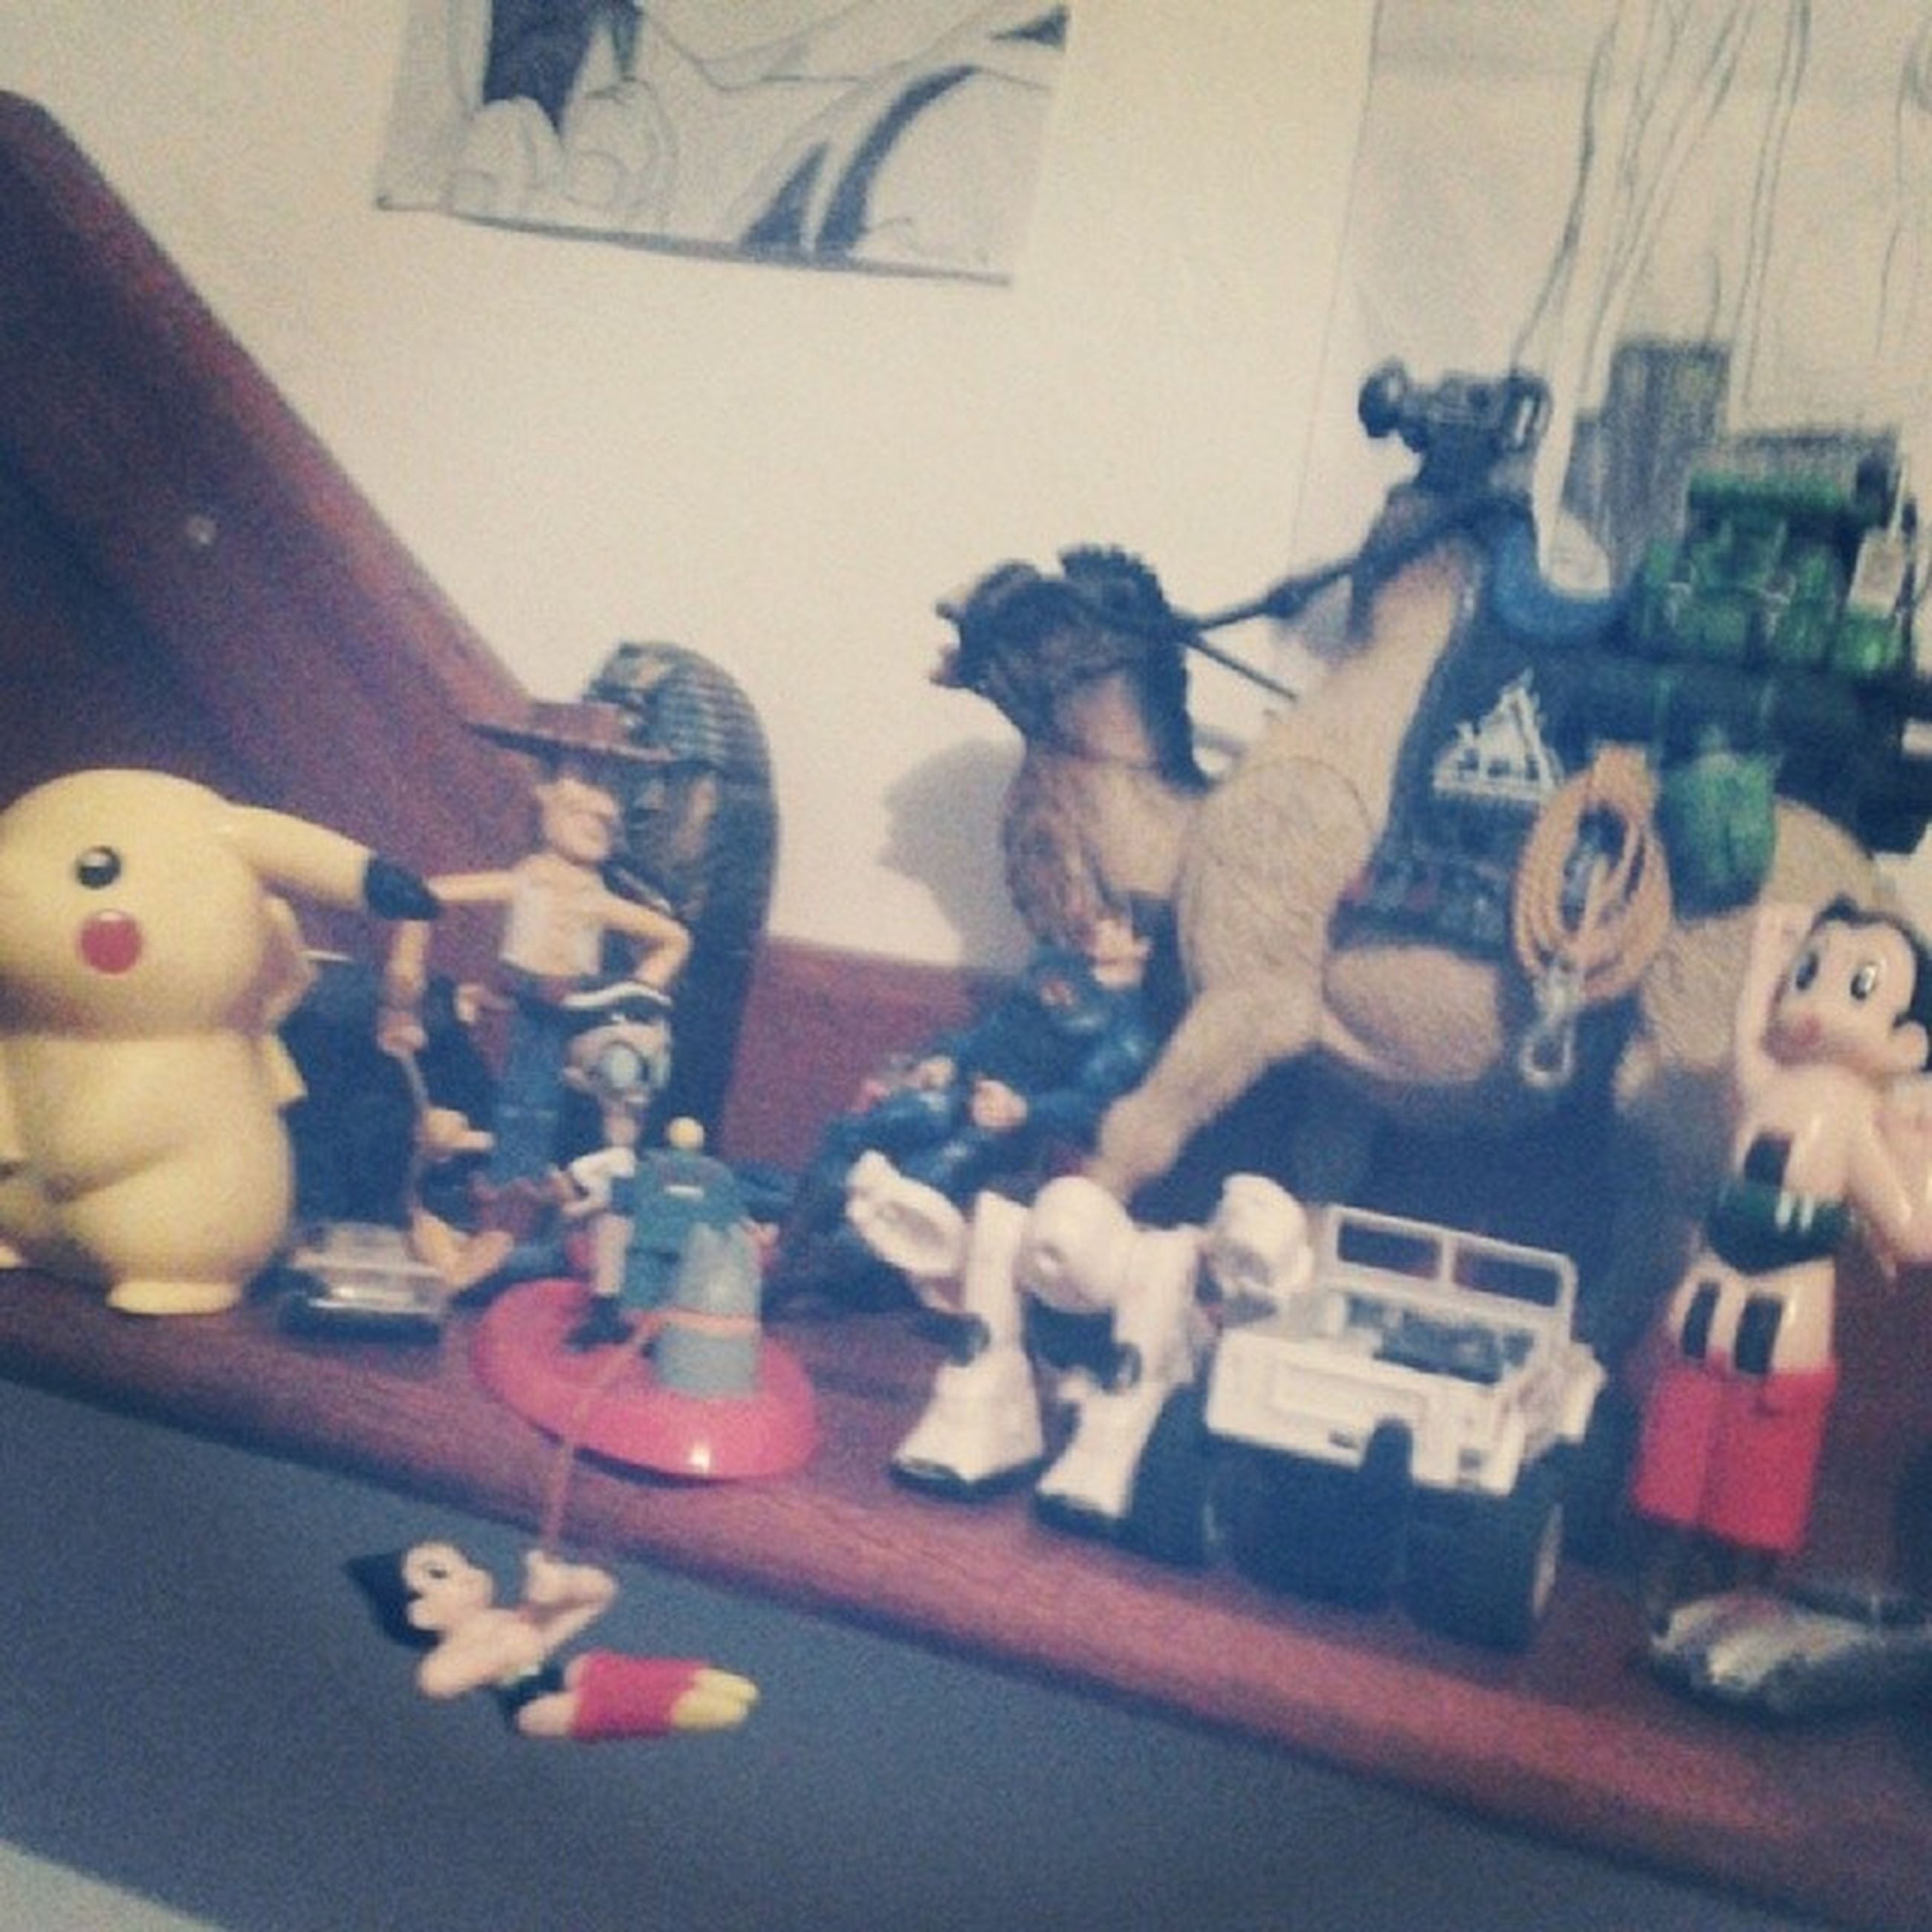 indoors, animal representation, toy, art, art and craft, creativity, human representation, home interior, variation, still life, table, animal themes, close-up, no people, glass - material, high angle view, figurine, craft